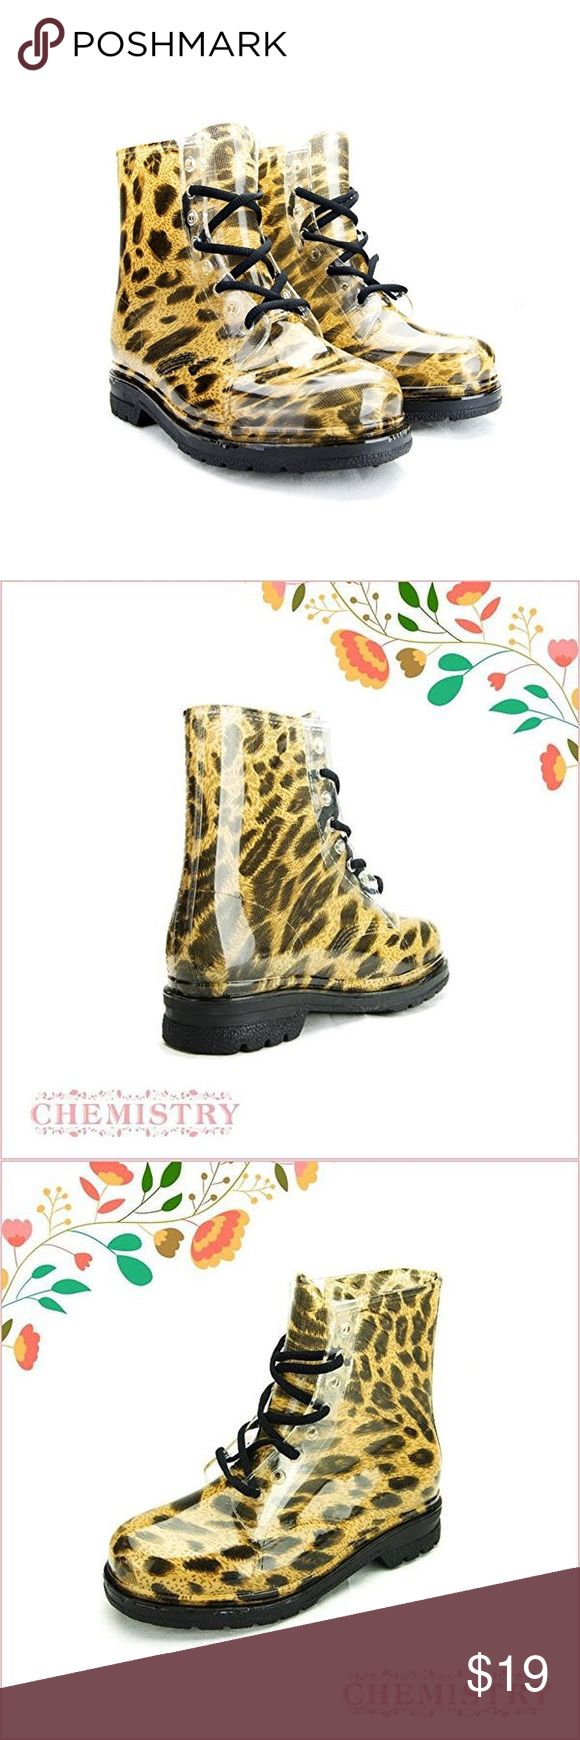 Military Style. Leopard Print Short Rain Boots Grab your umbrella to make a fun splash in these fun military style short Rain boots!  Very fashion.  We sell them in brand new condition in its shoe box. We have all sizes available! Size 6 through 10 Chemistry Shoes Winter & Rain Boots